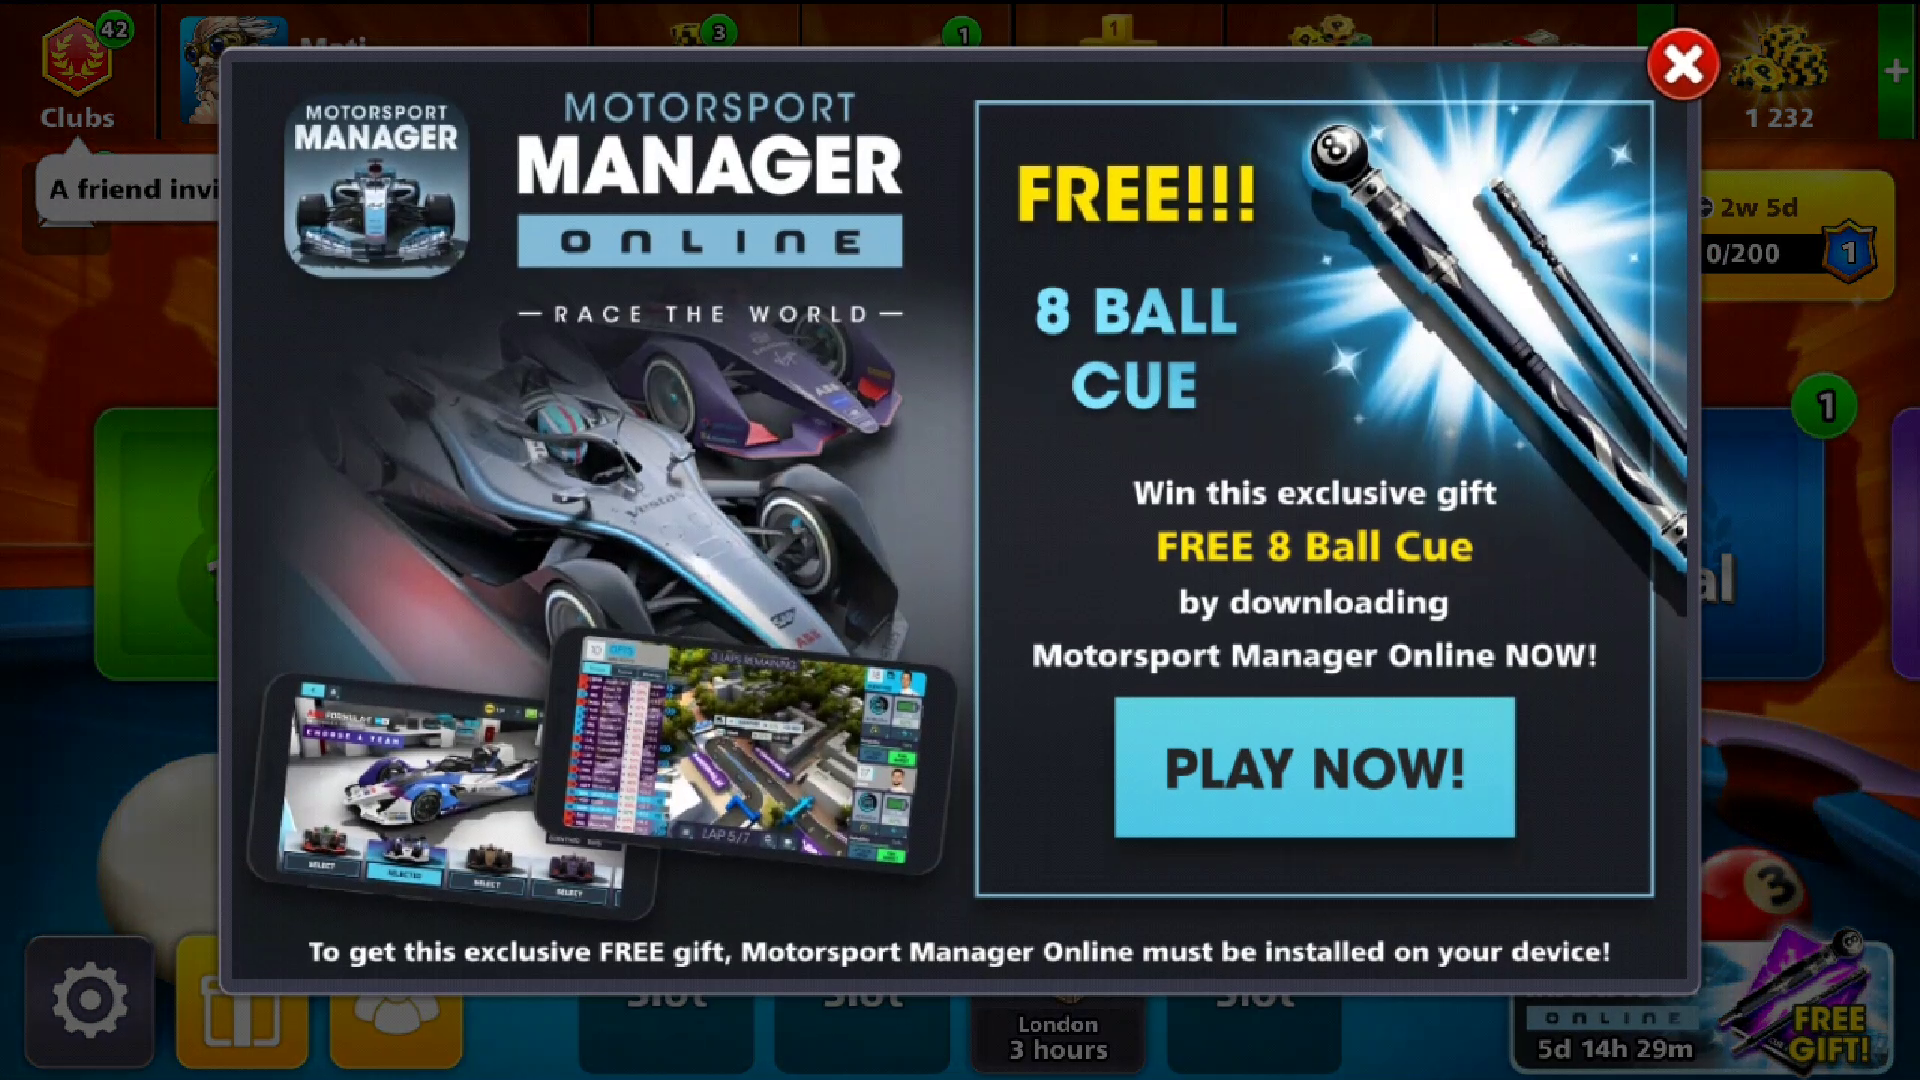 free 8 ball cue offer